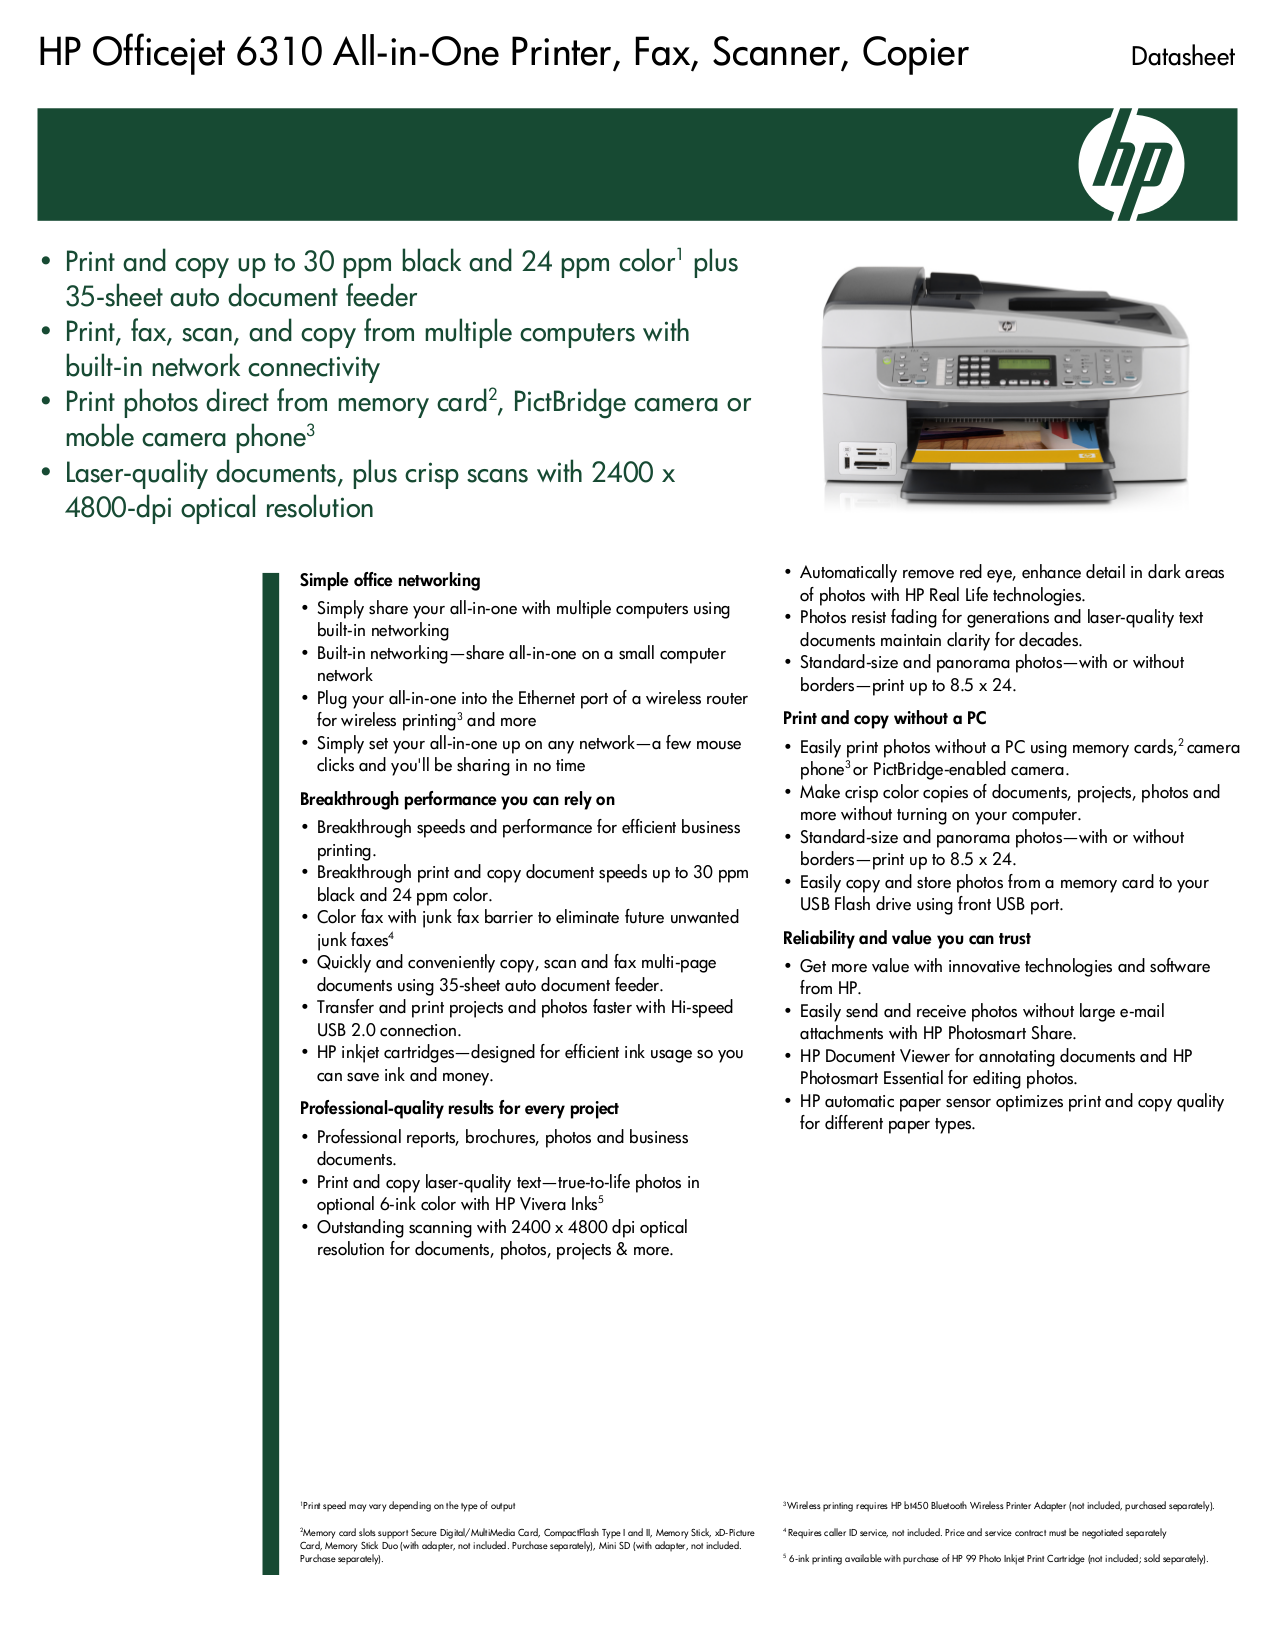 hp 6310xi manual product user guide instruction u2022 rh testdpc co HP Officejet 6310 All in One Manual HP Officejet 6310 All in One Manual